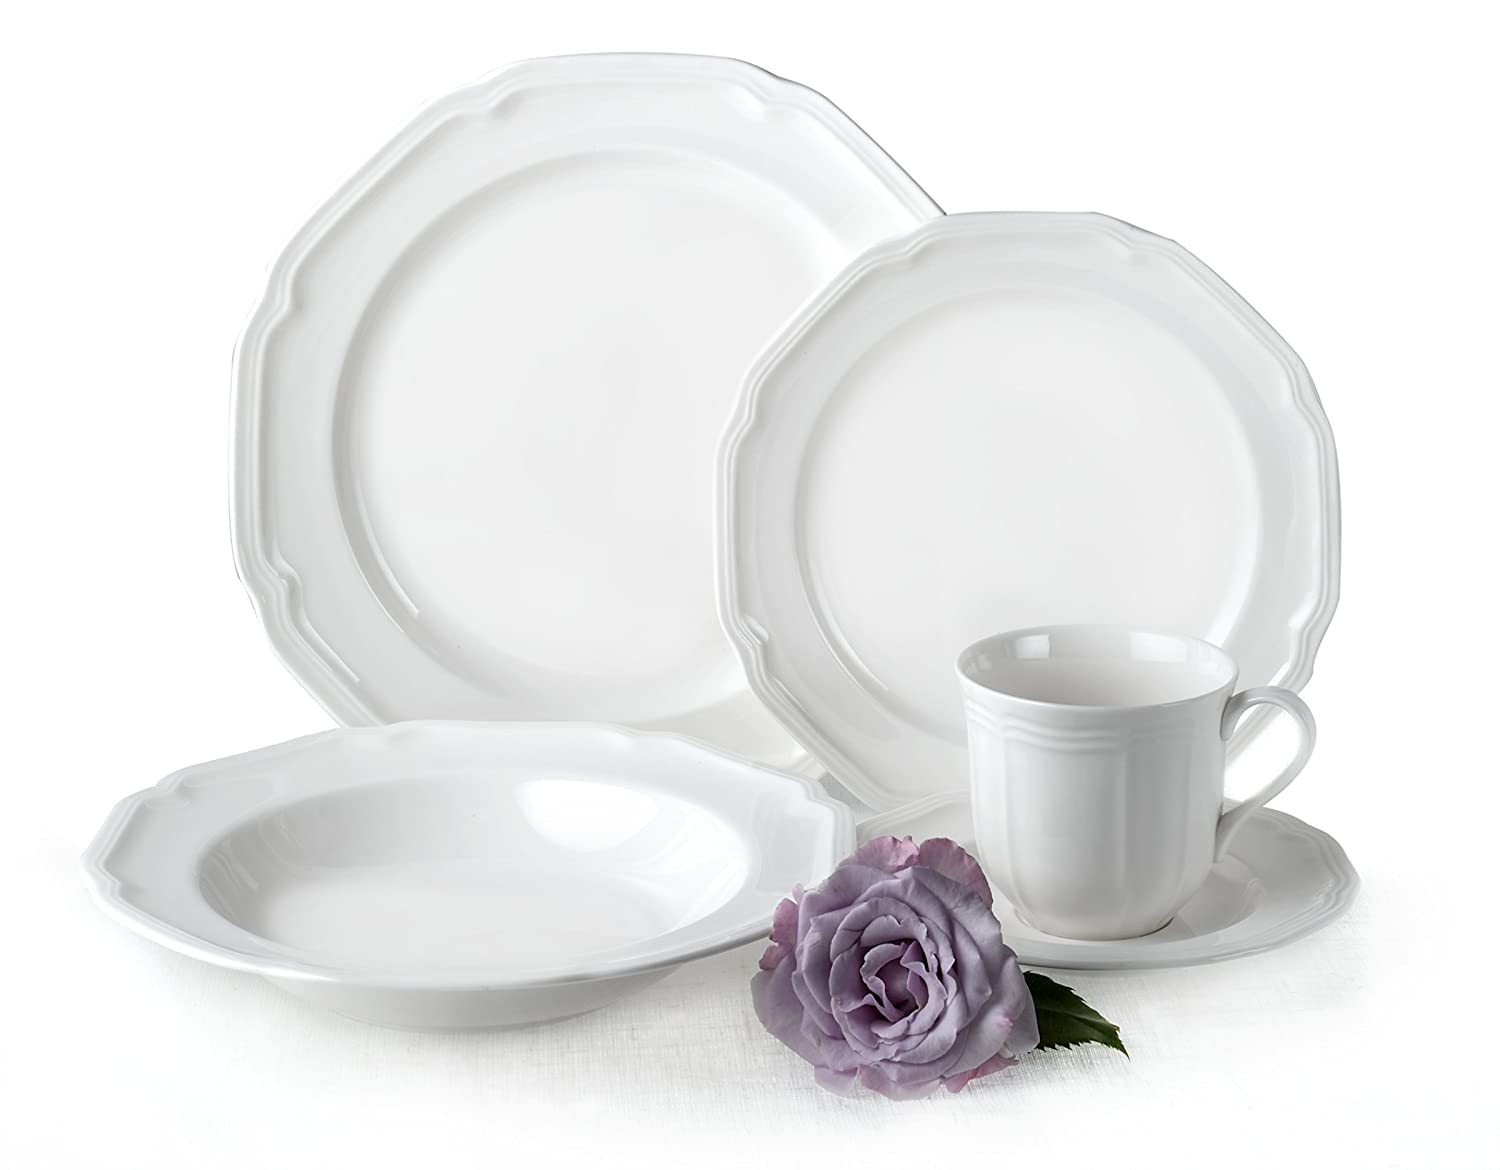 Best Dinnerware Sets 2019 - The Kitchen Witches